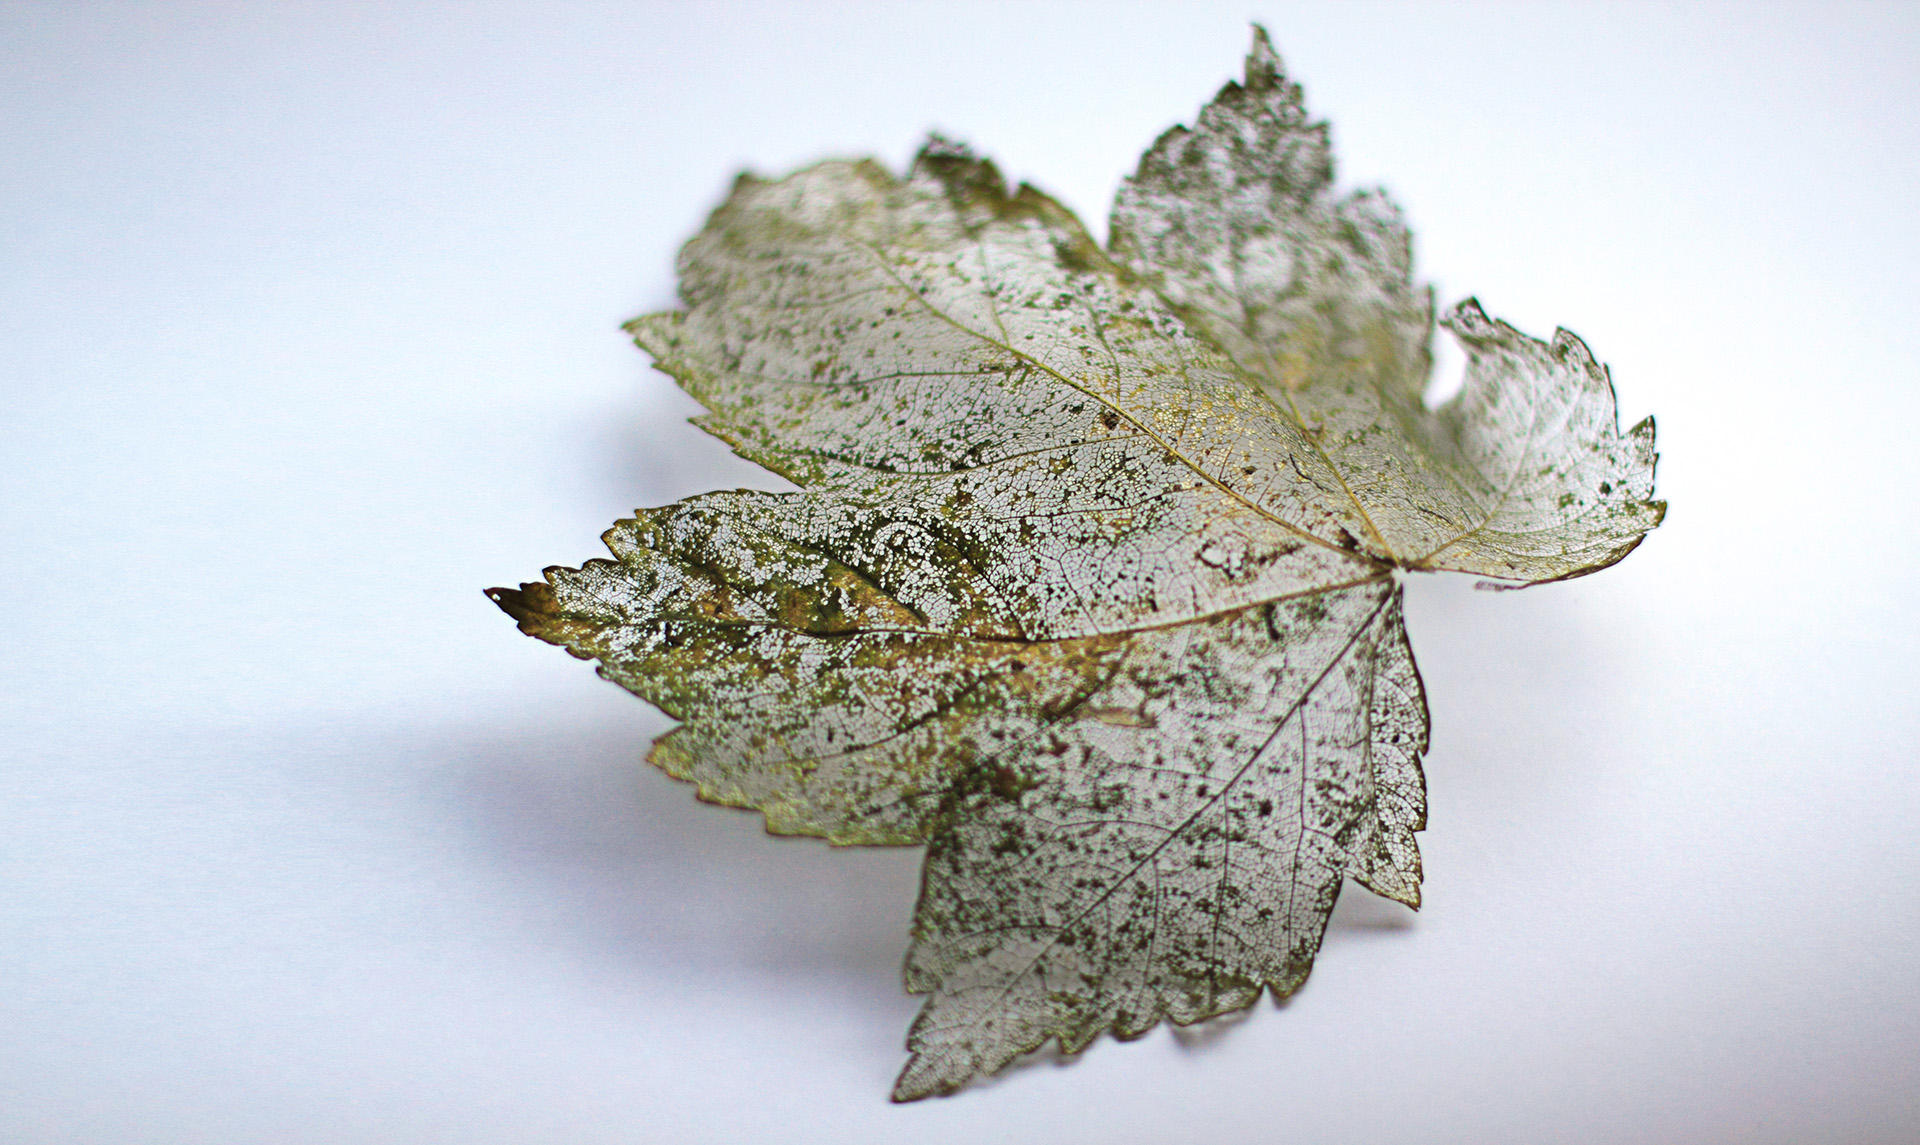 Following a year outside in the English winter and, this sycamore leaf as decayed down to its structure. Leaving a filigree, lace finish that shines in the golden light of the evening Spring sunshine.